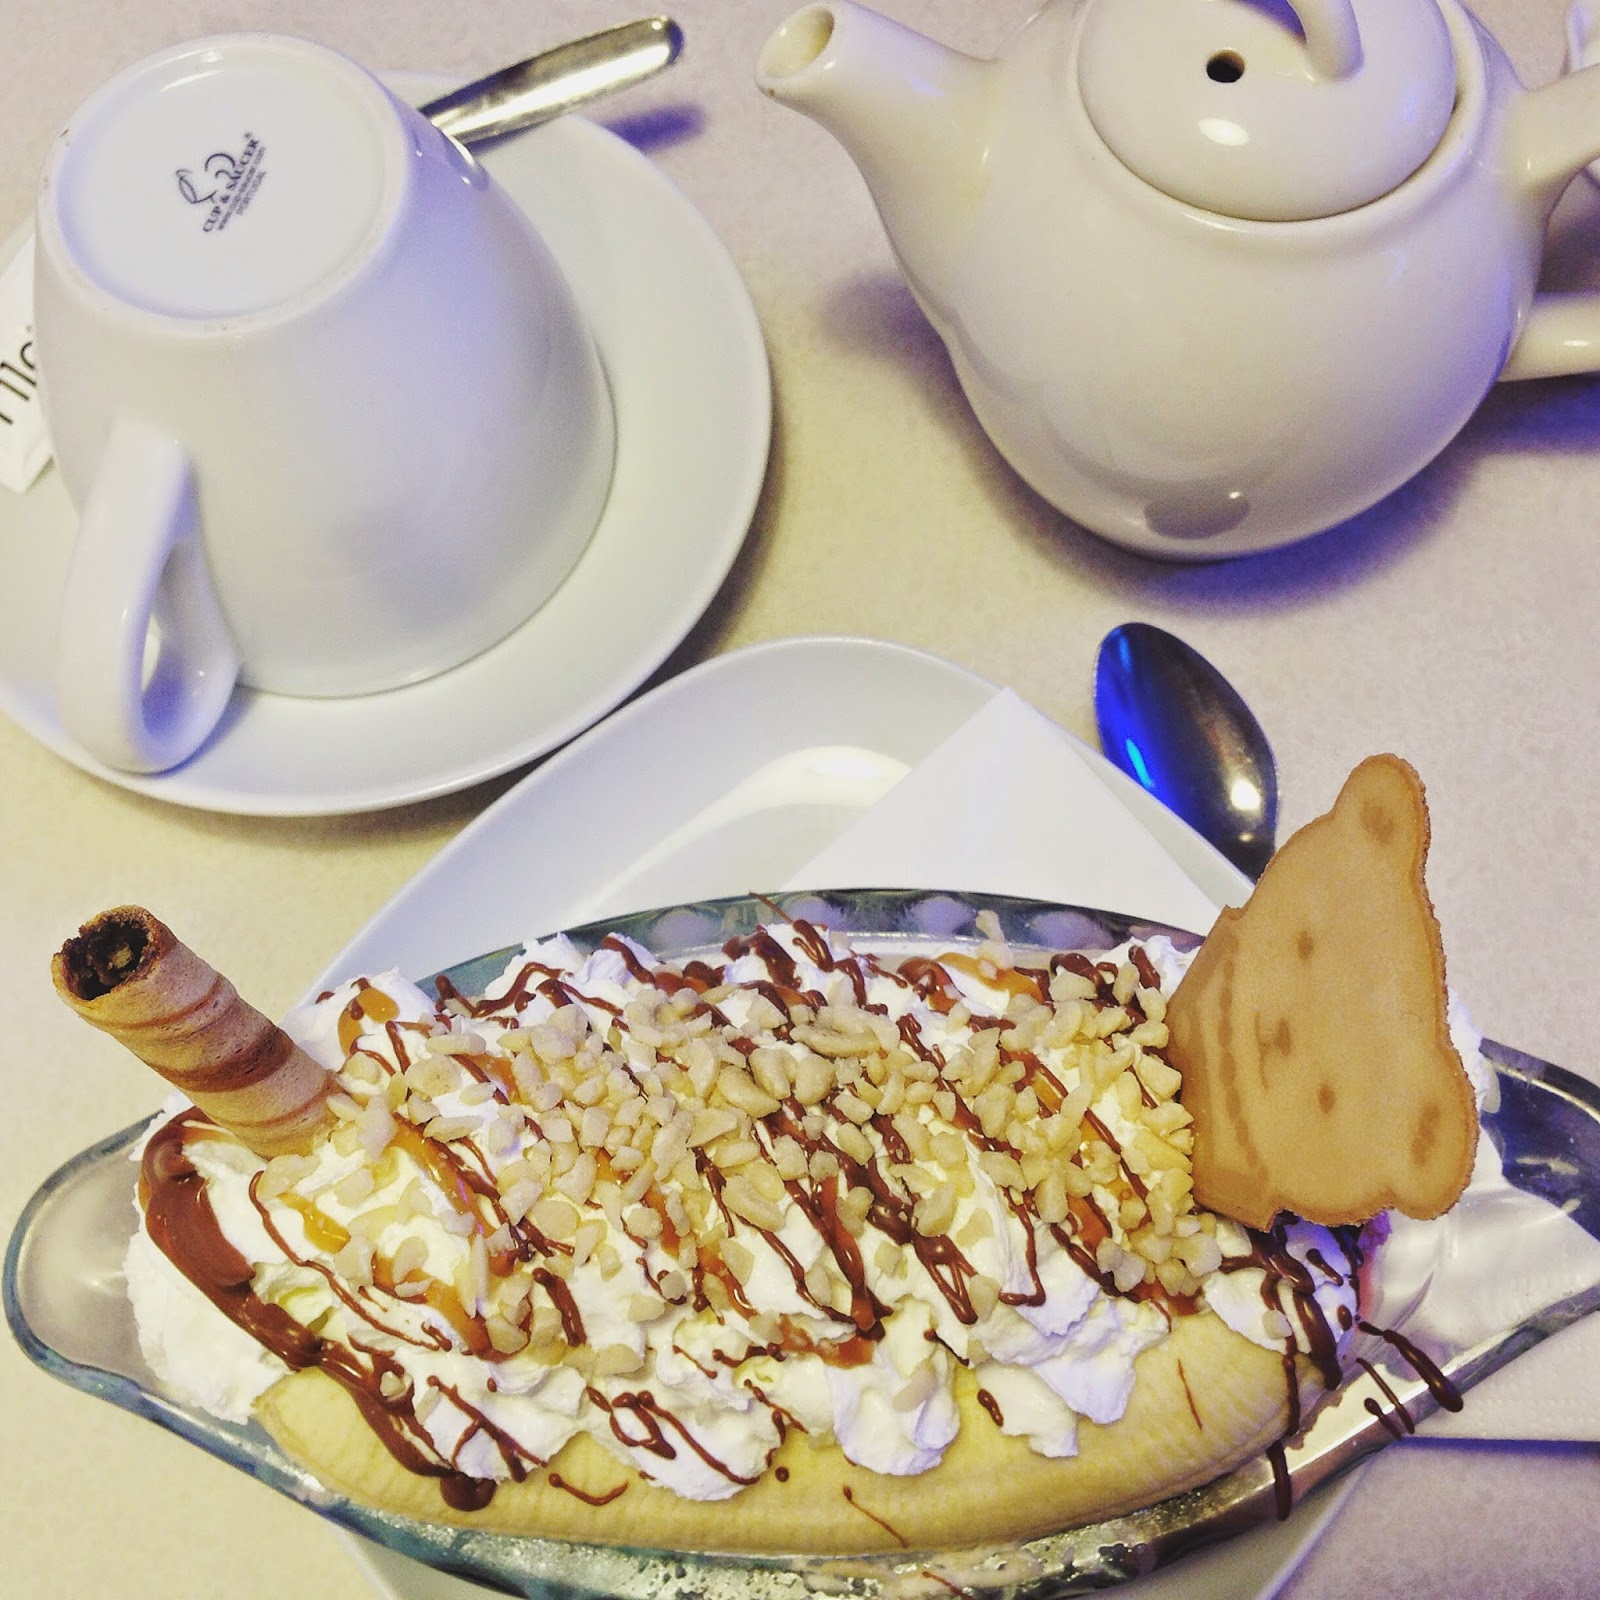 Lickety-Split-Banana-Split-Ice-Cream